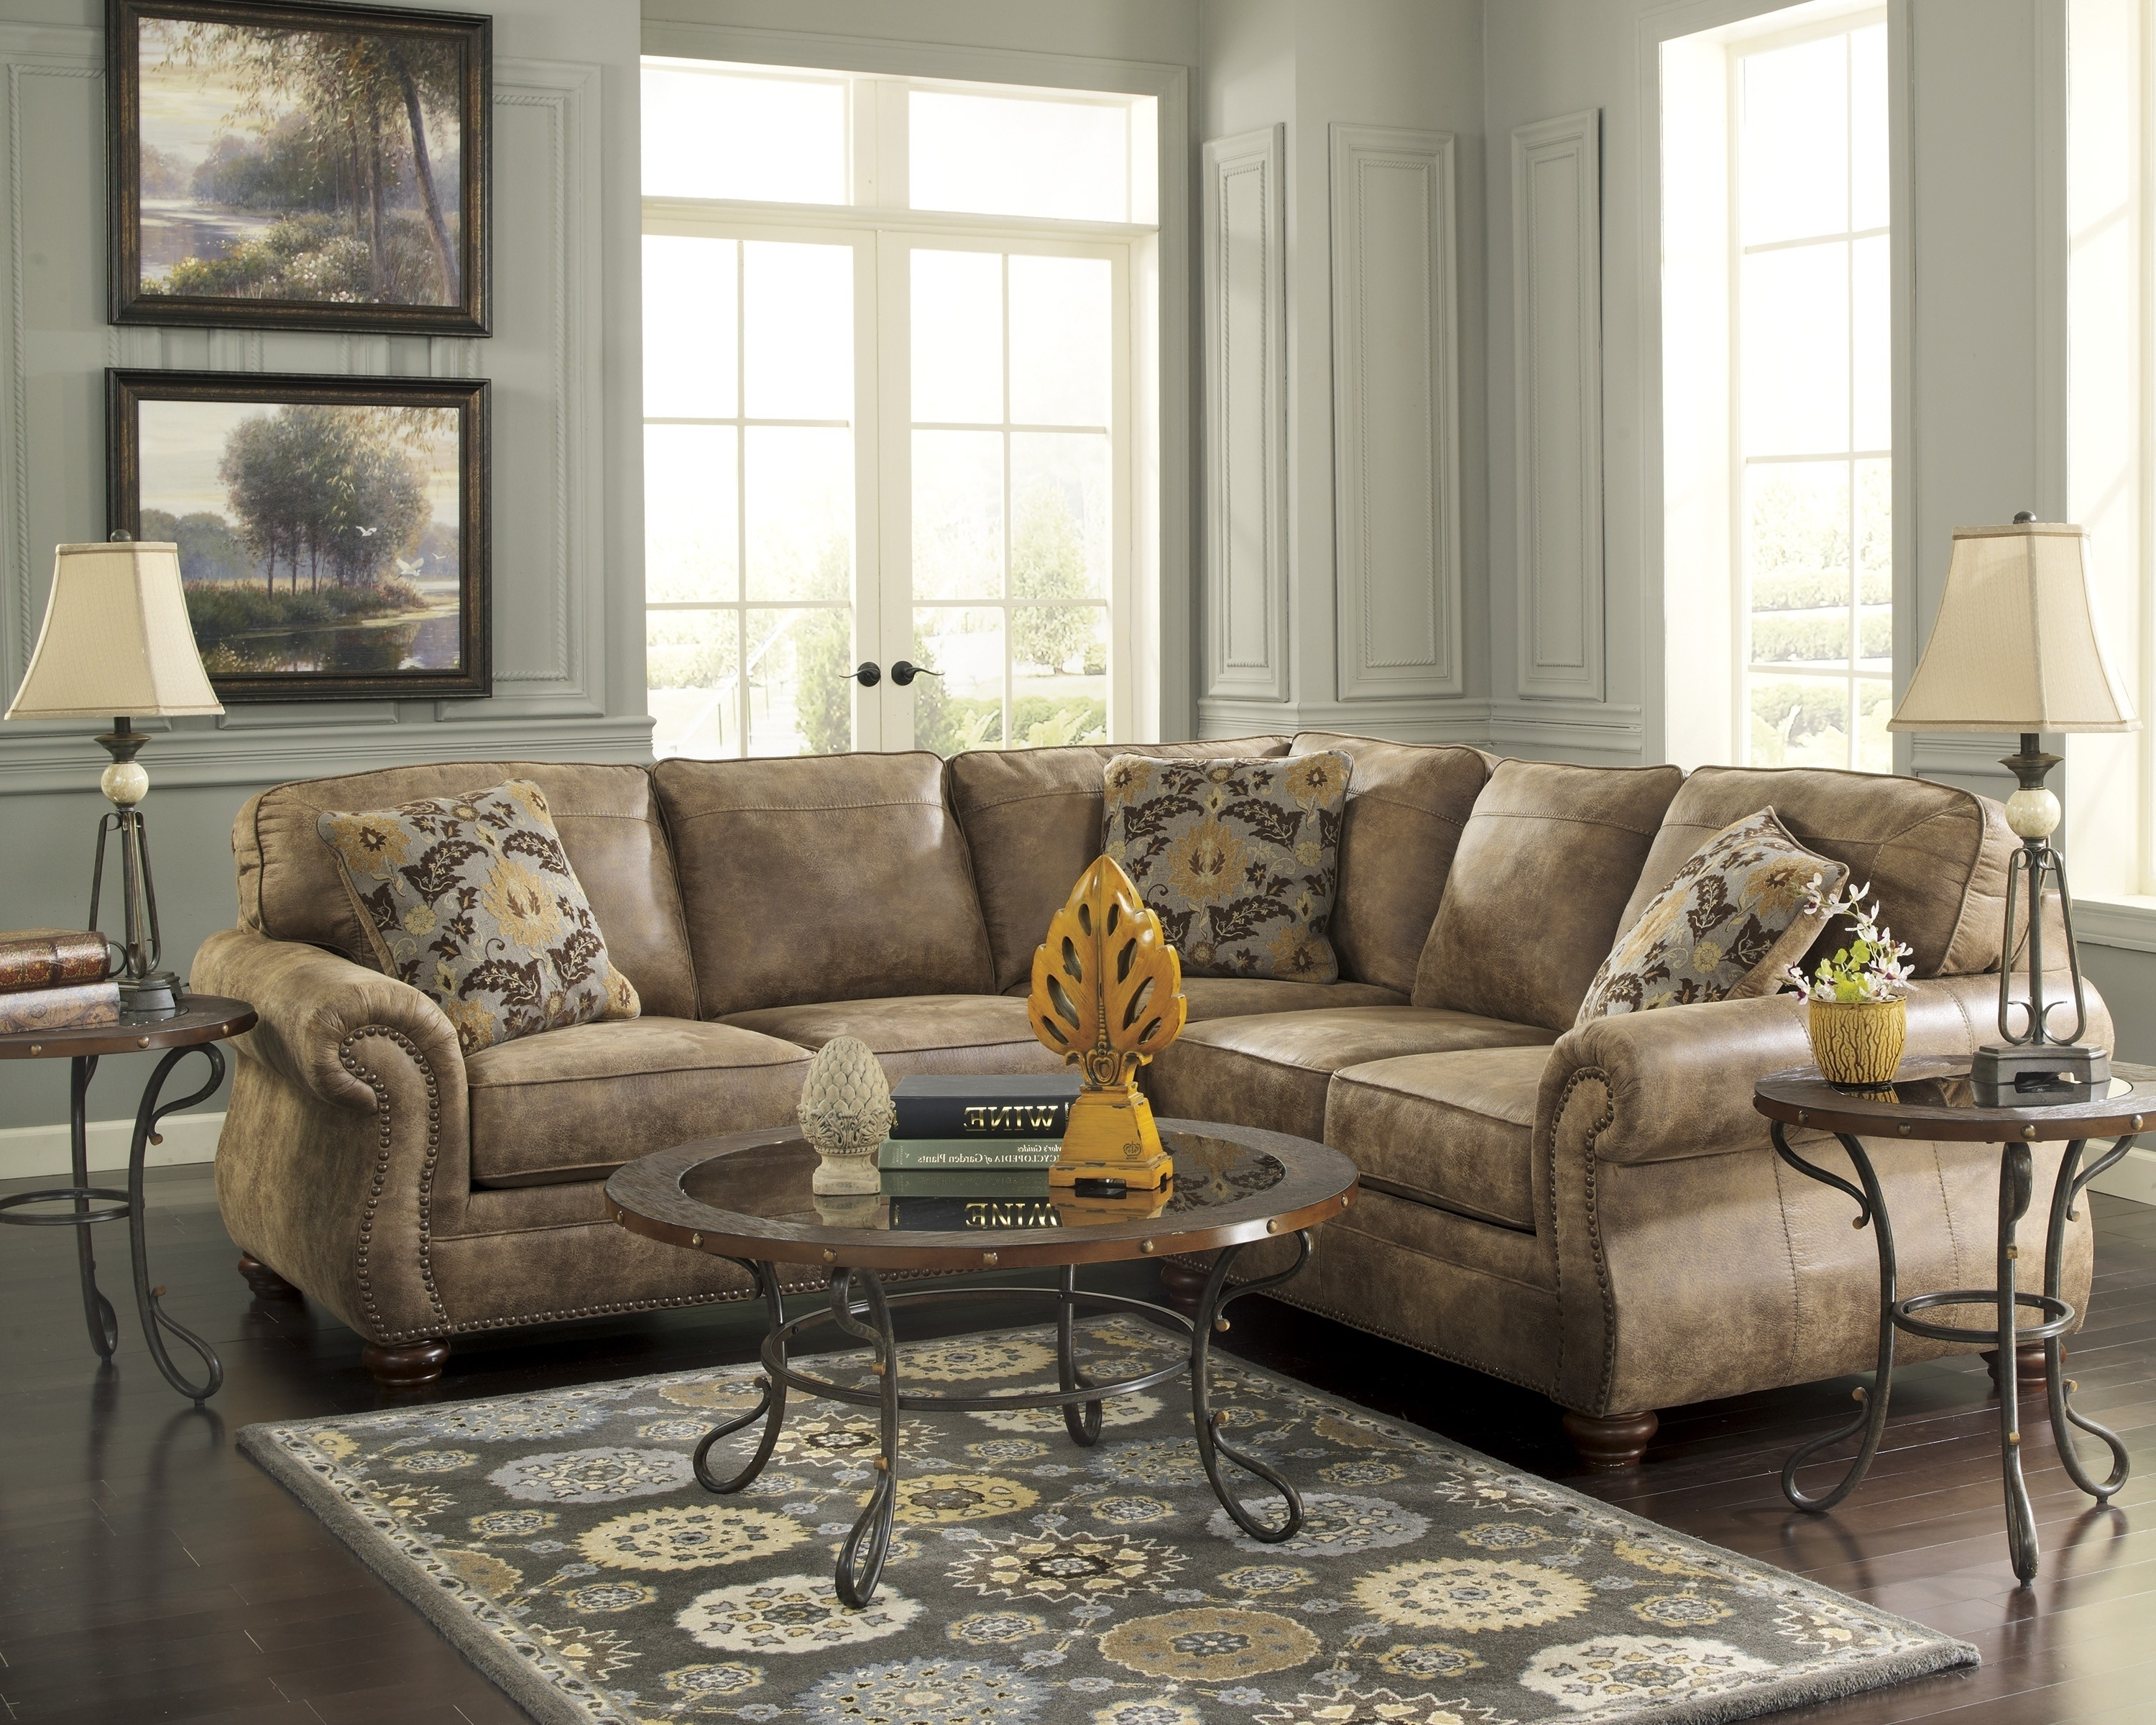 Stunning Sectional Sofas Tucson 90 For Your Olive Green Sectional With Regard To Tucson Sectional Sofas (View 9 of 10)